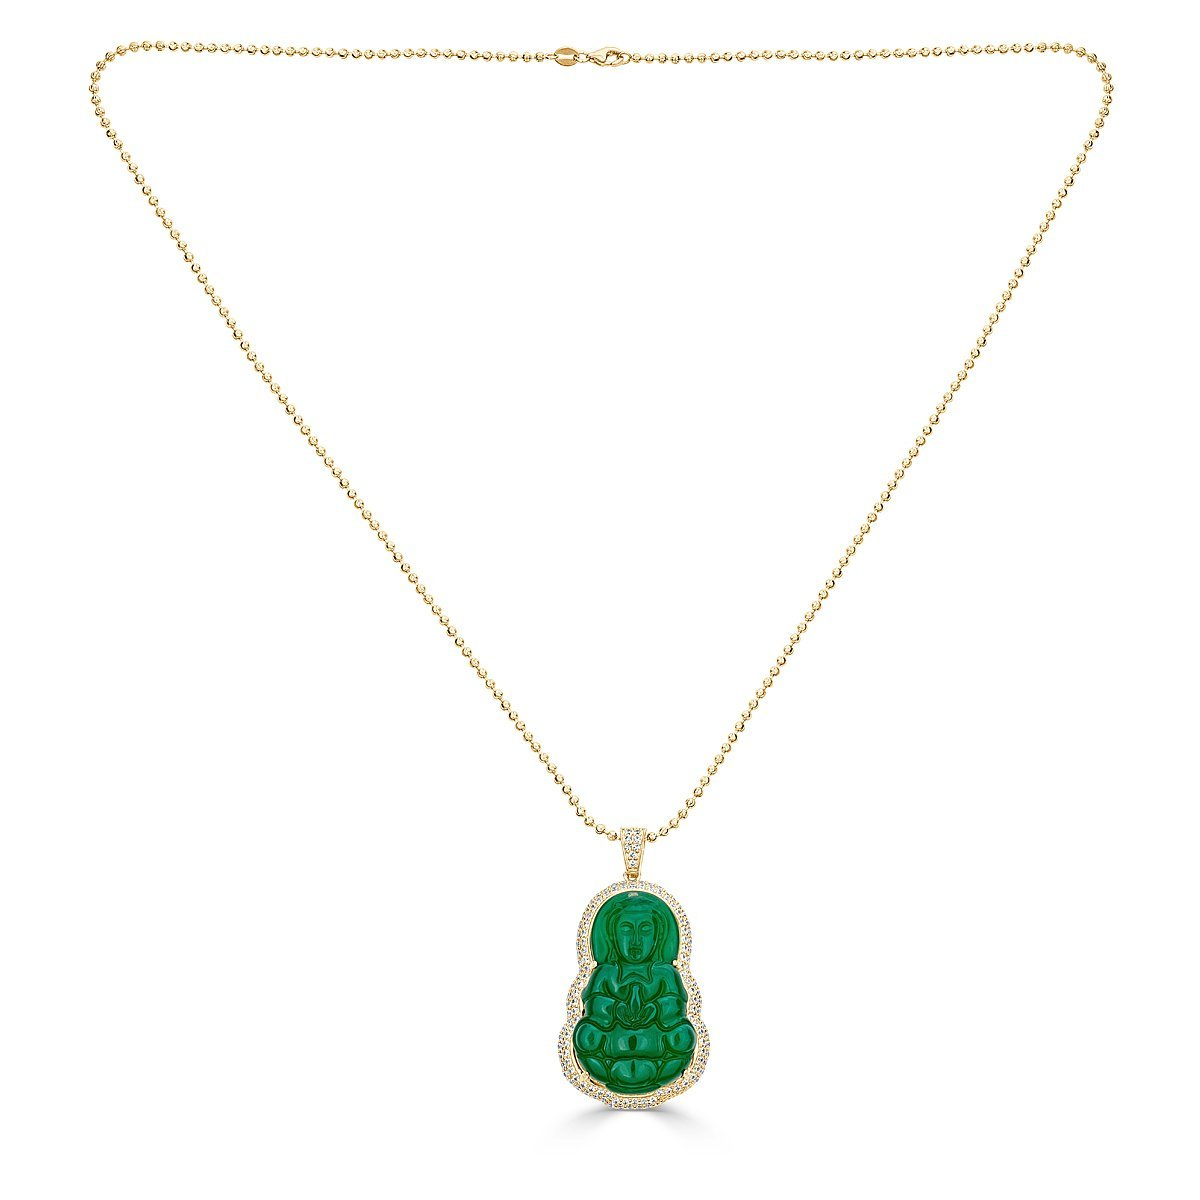 Gold Plated Sterling Silver Buddha Necklace by Caratina